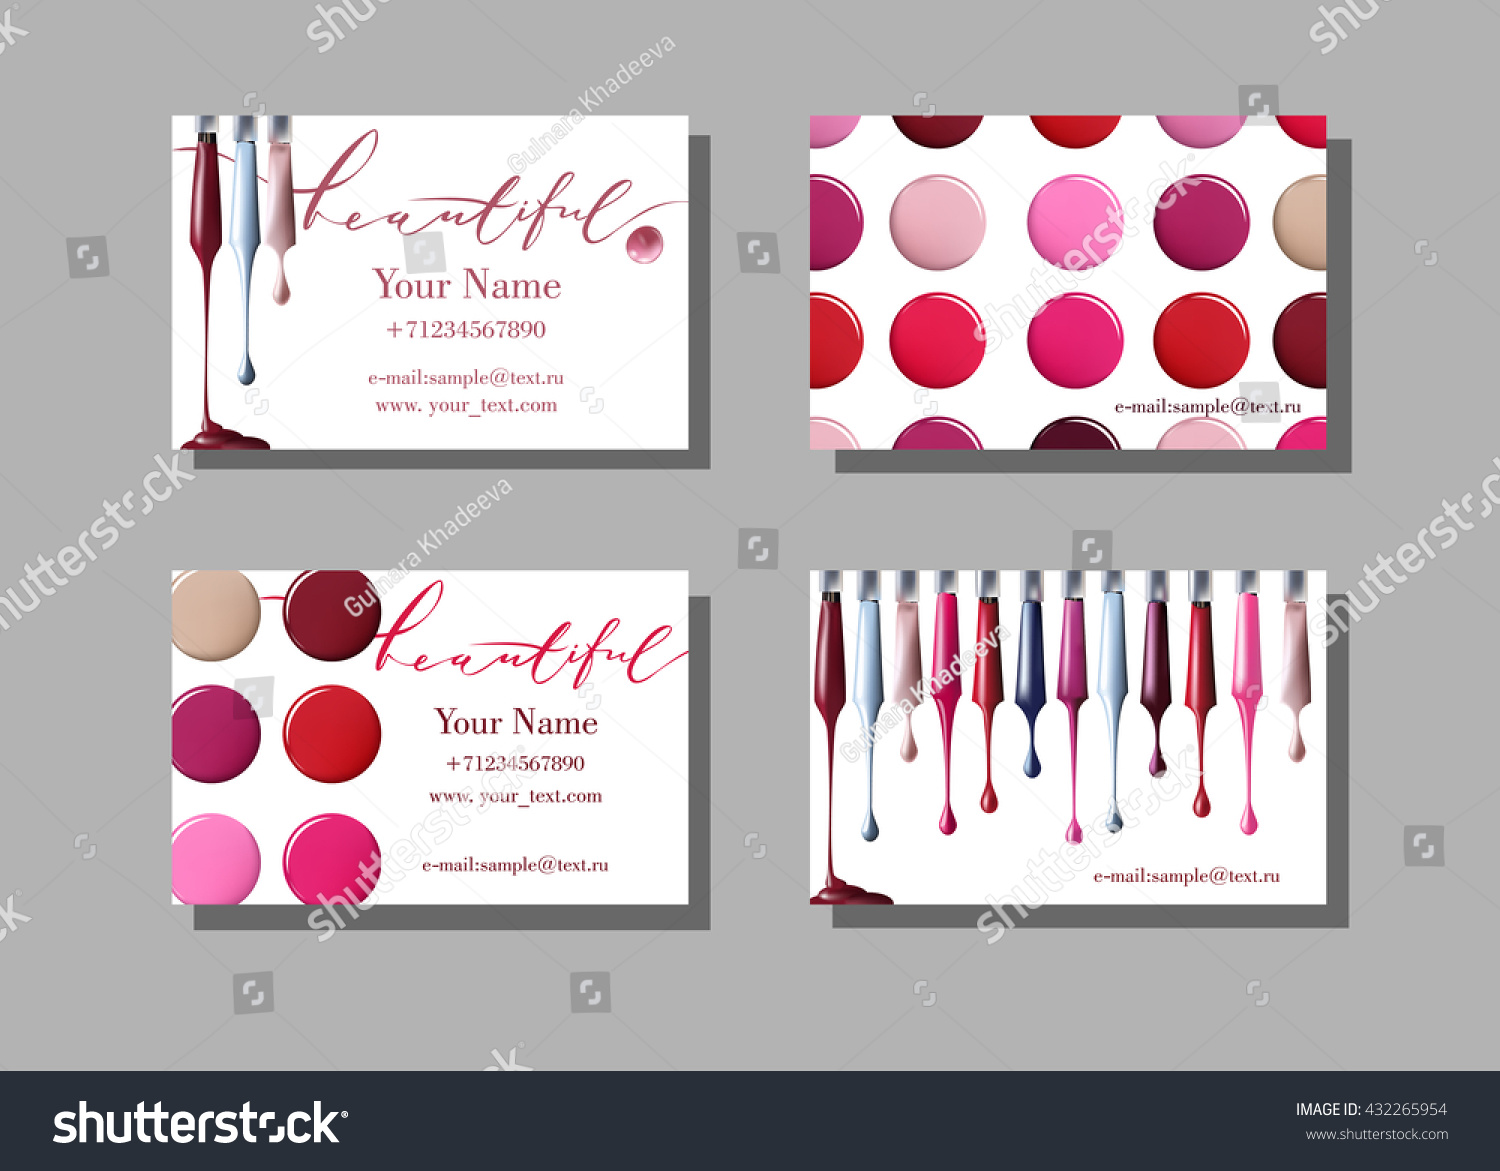 Makeup artist business card vector template em vetor stock 432265954 makeup artist business card vector template with makeup items pattern nail polish fashion and reheart Gallery